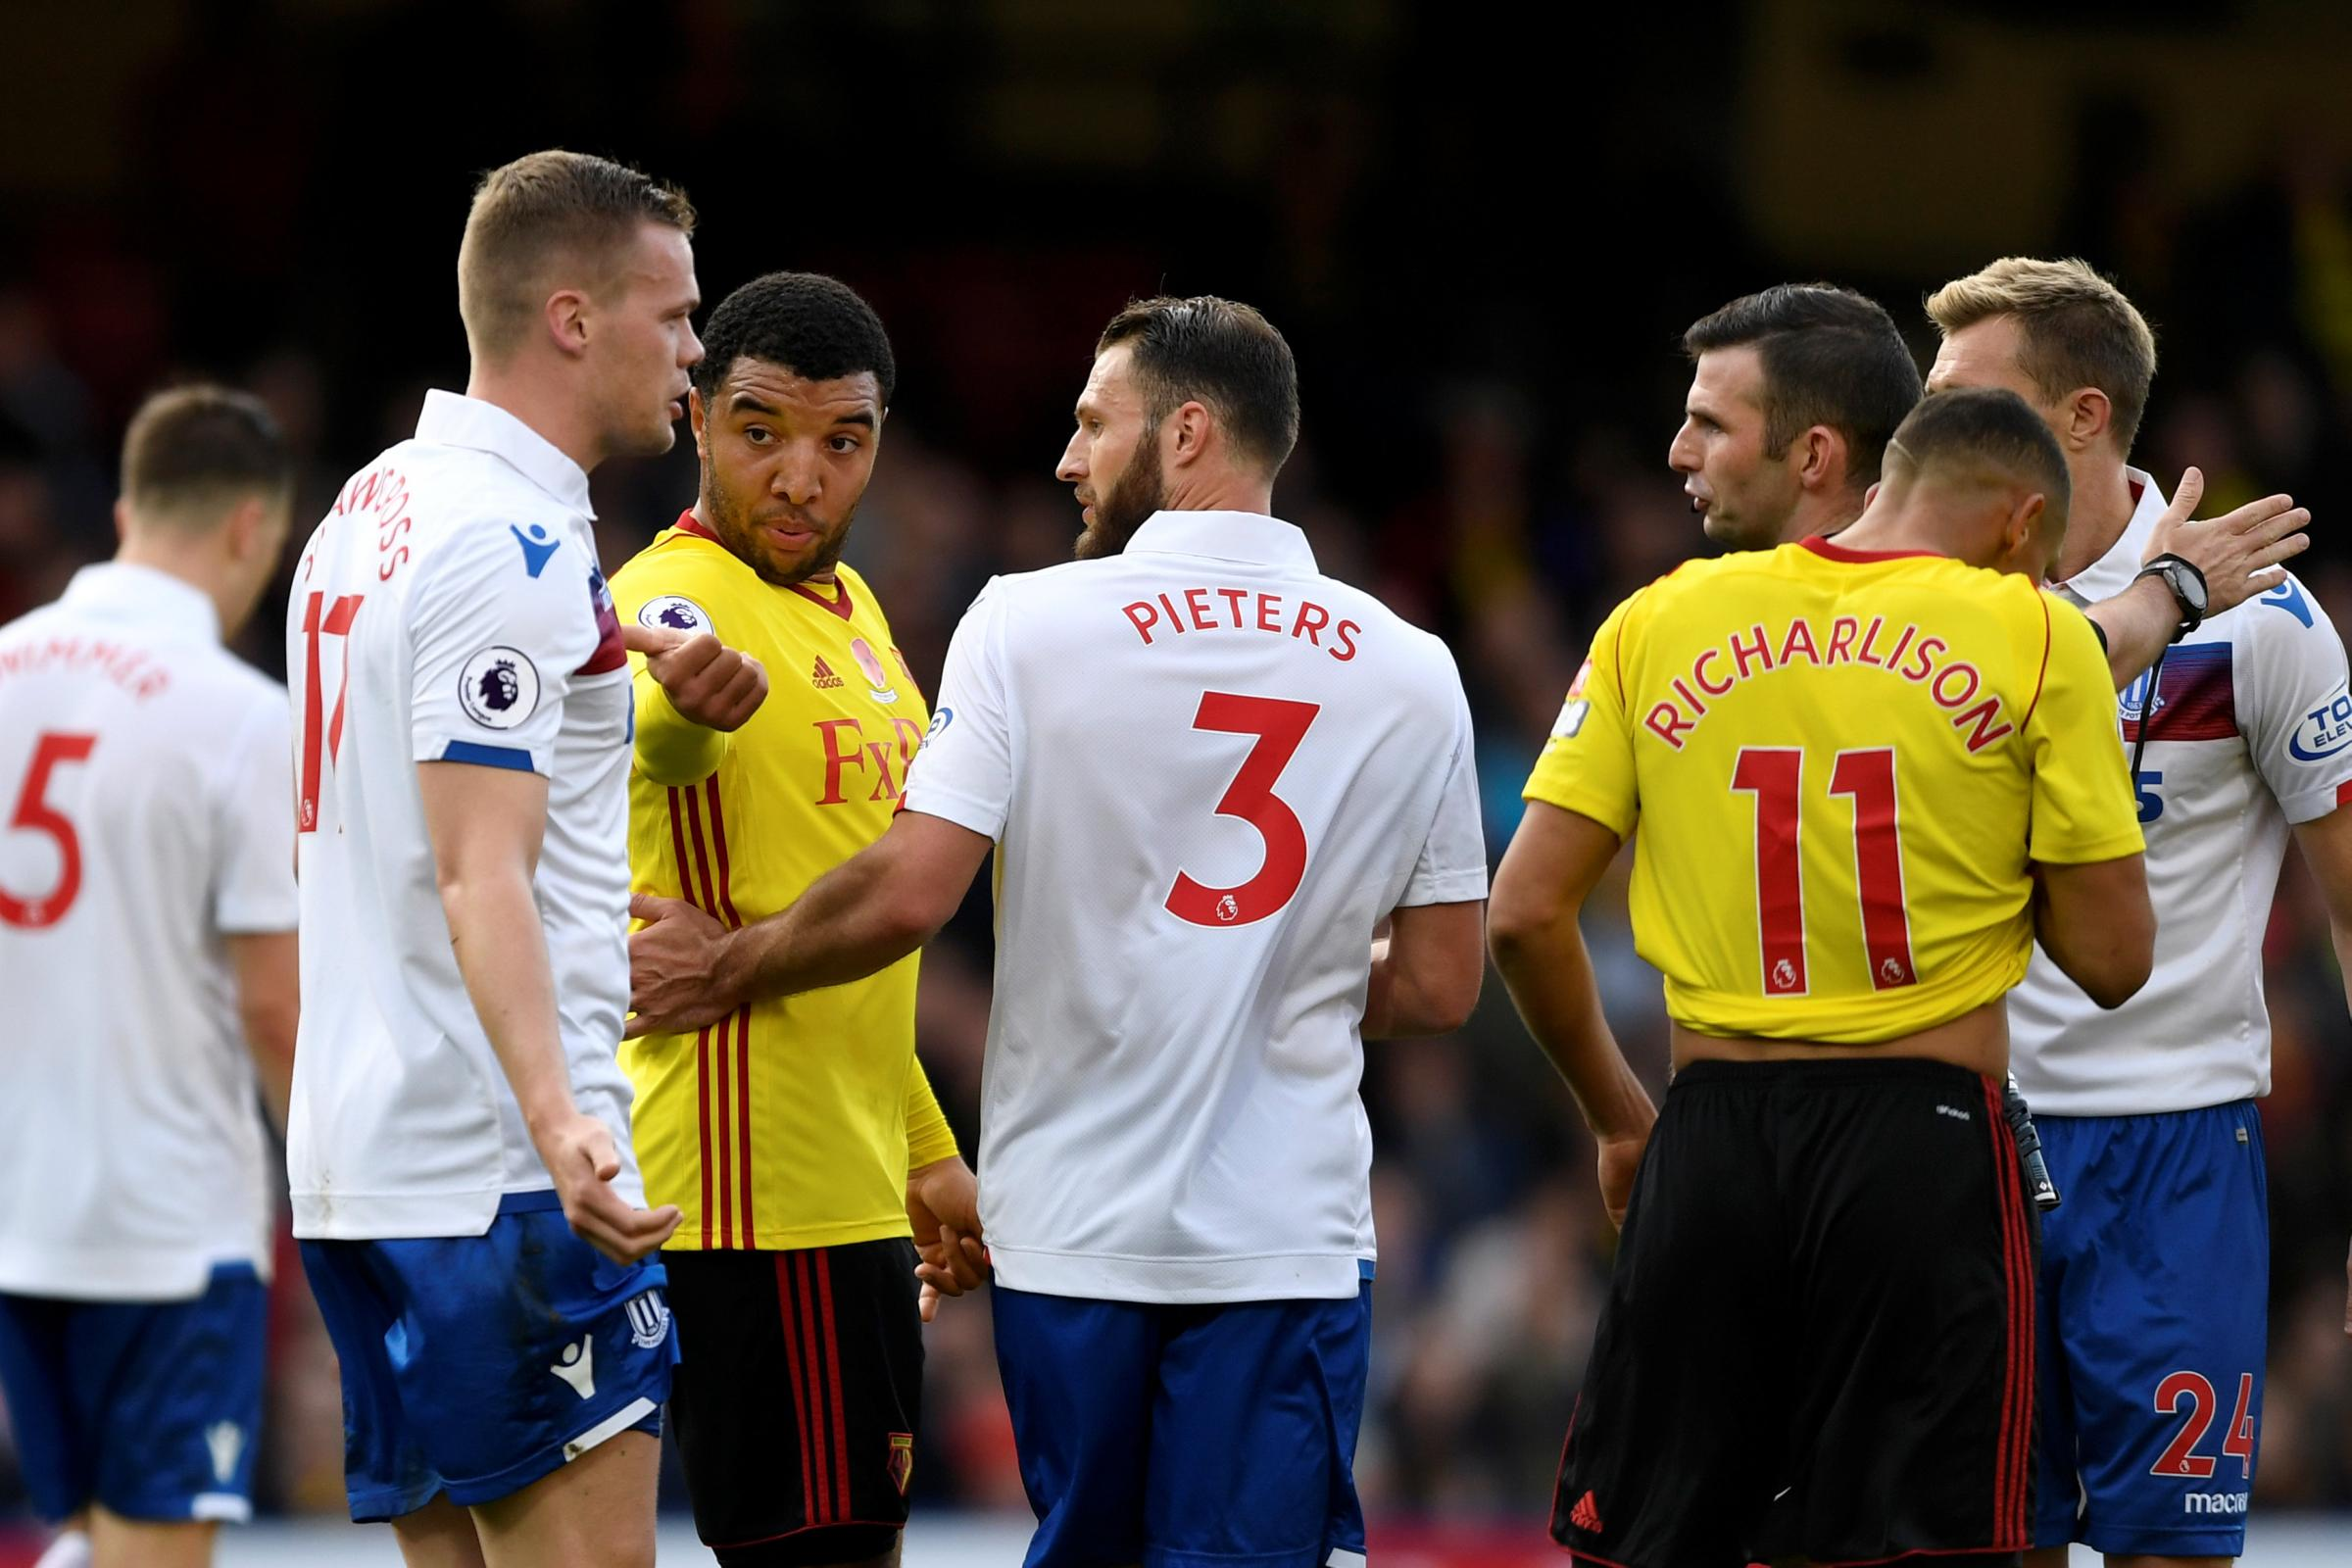 Troy Deeney faces a three-match ban for his actions at the end of Saturday's game. Picture: Action Images